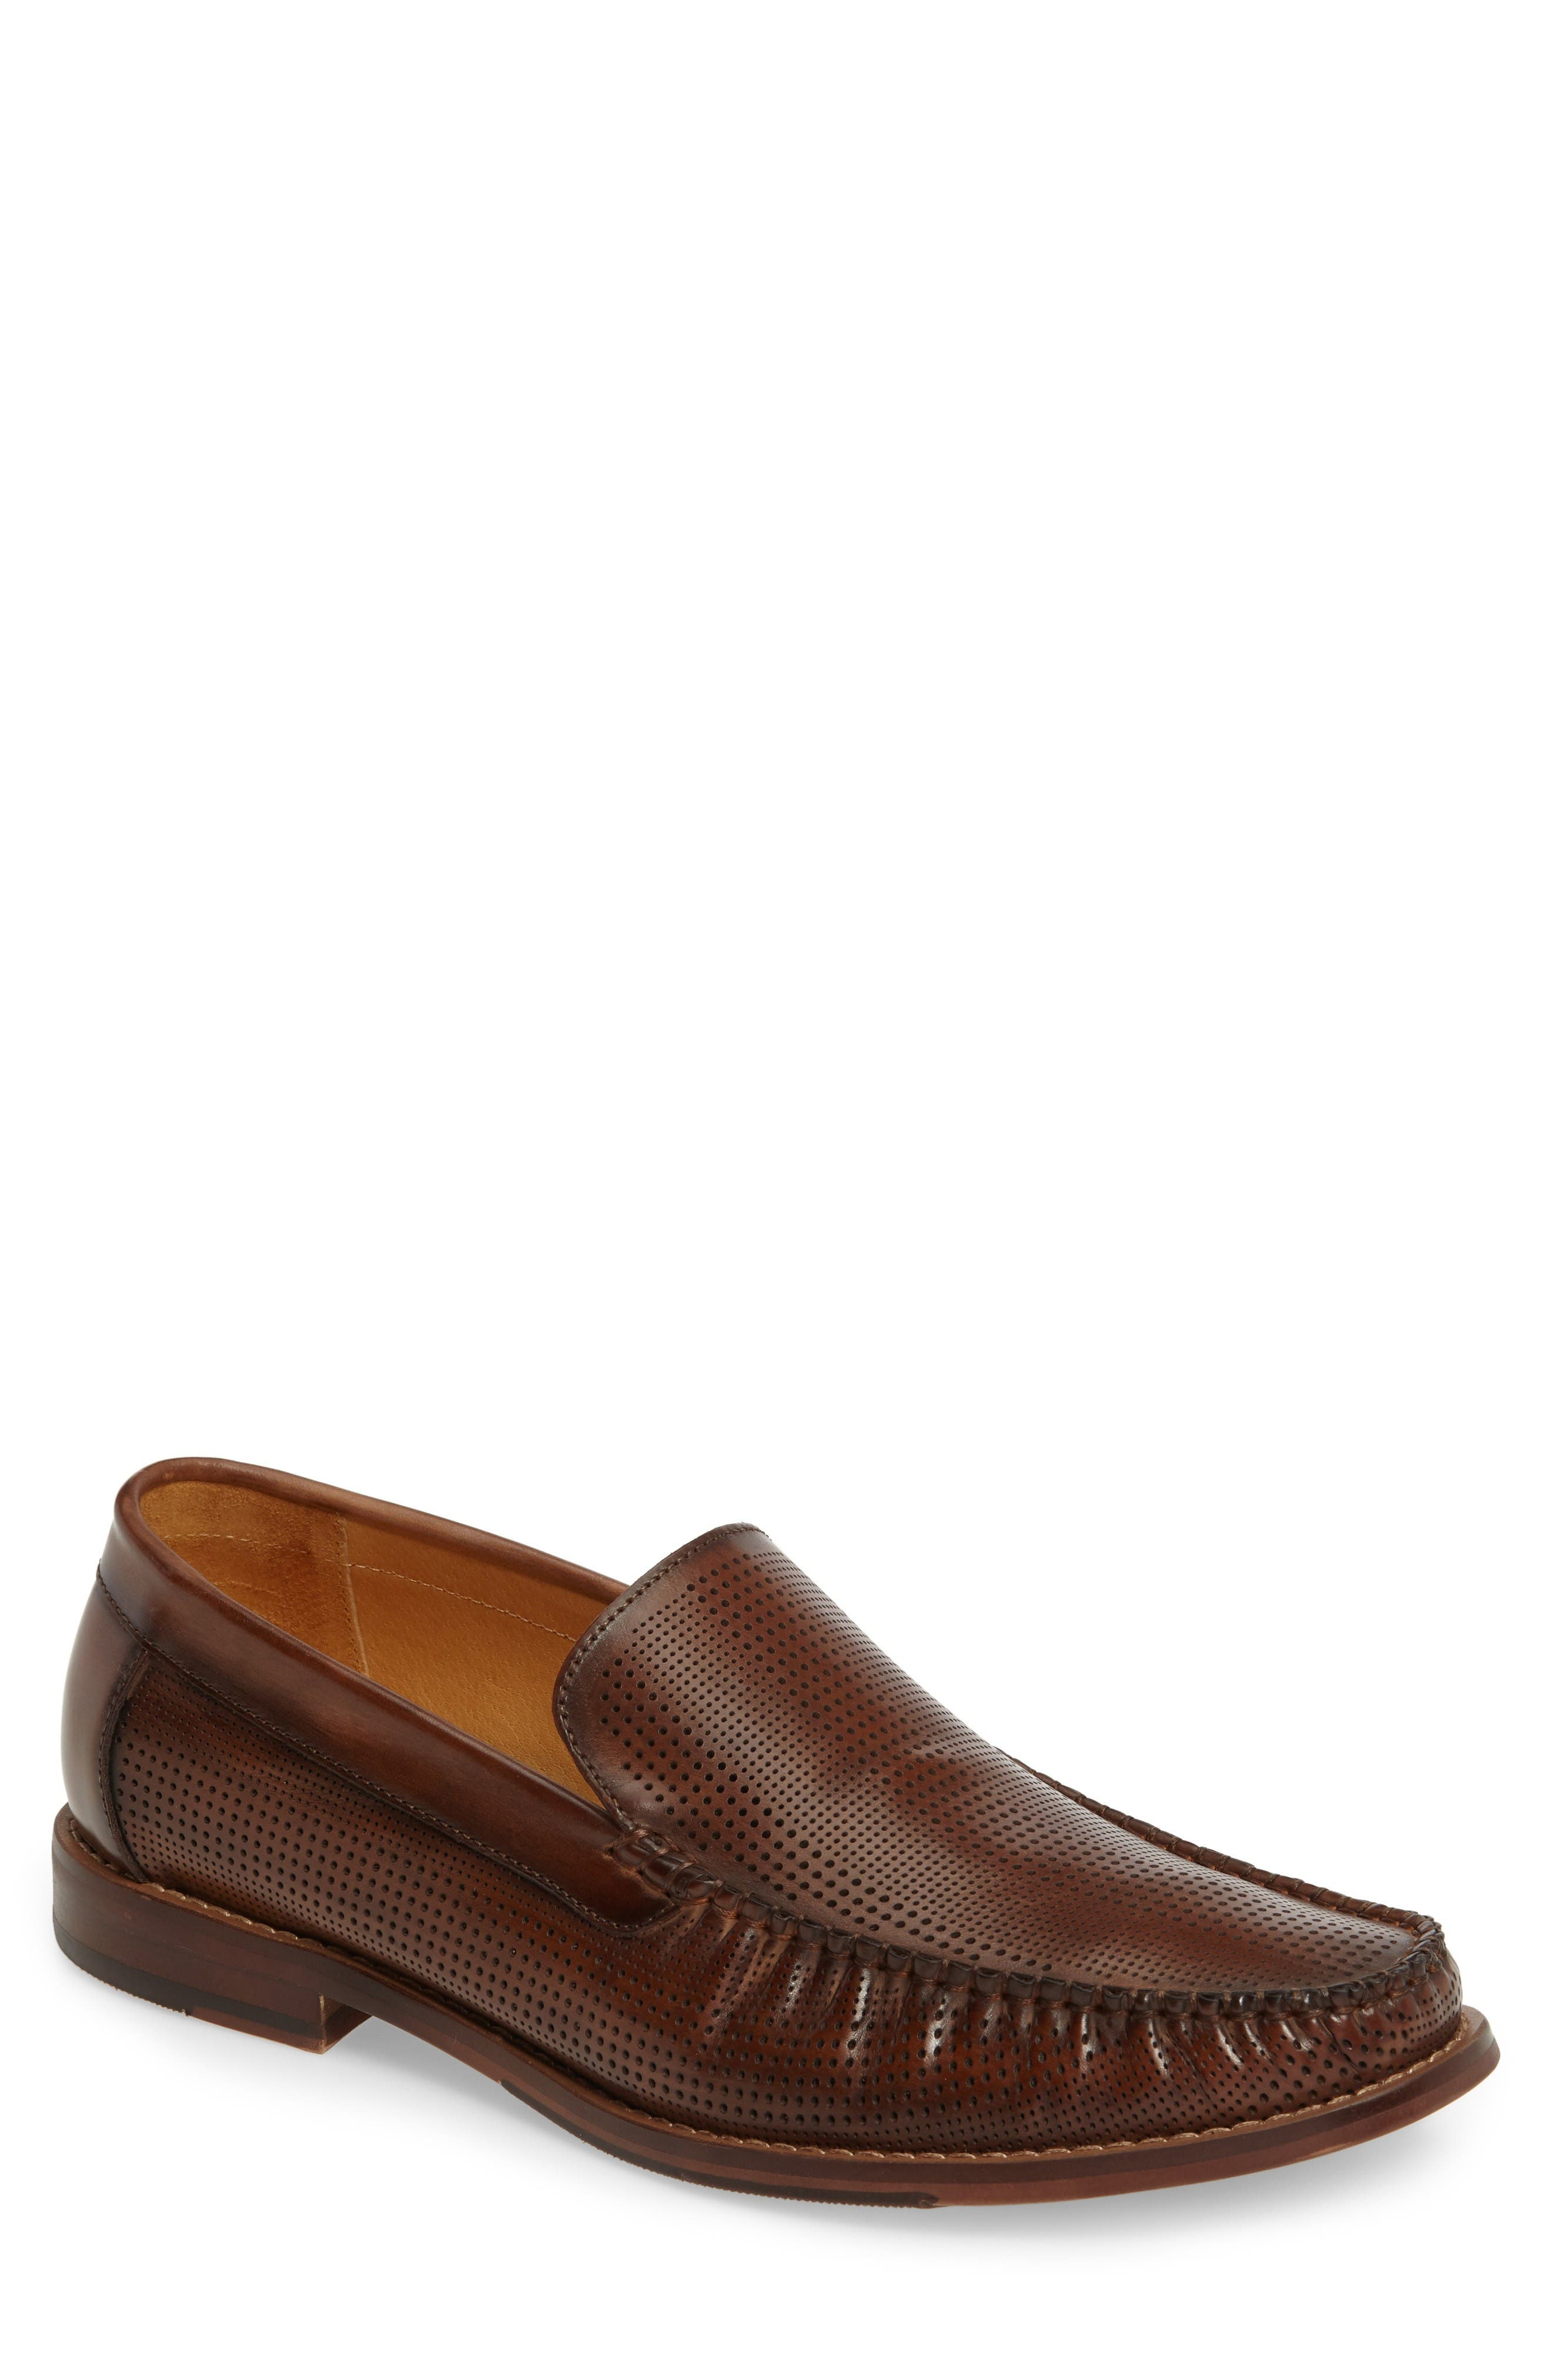 KENNETH COLE NEW YORK In the Media Loafer